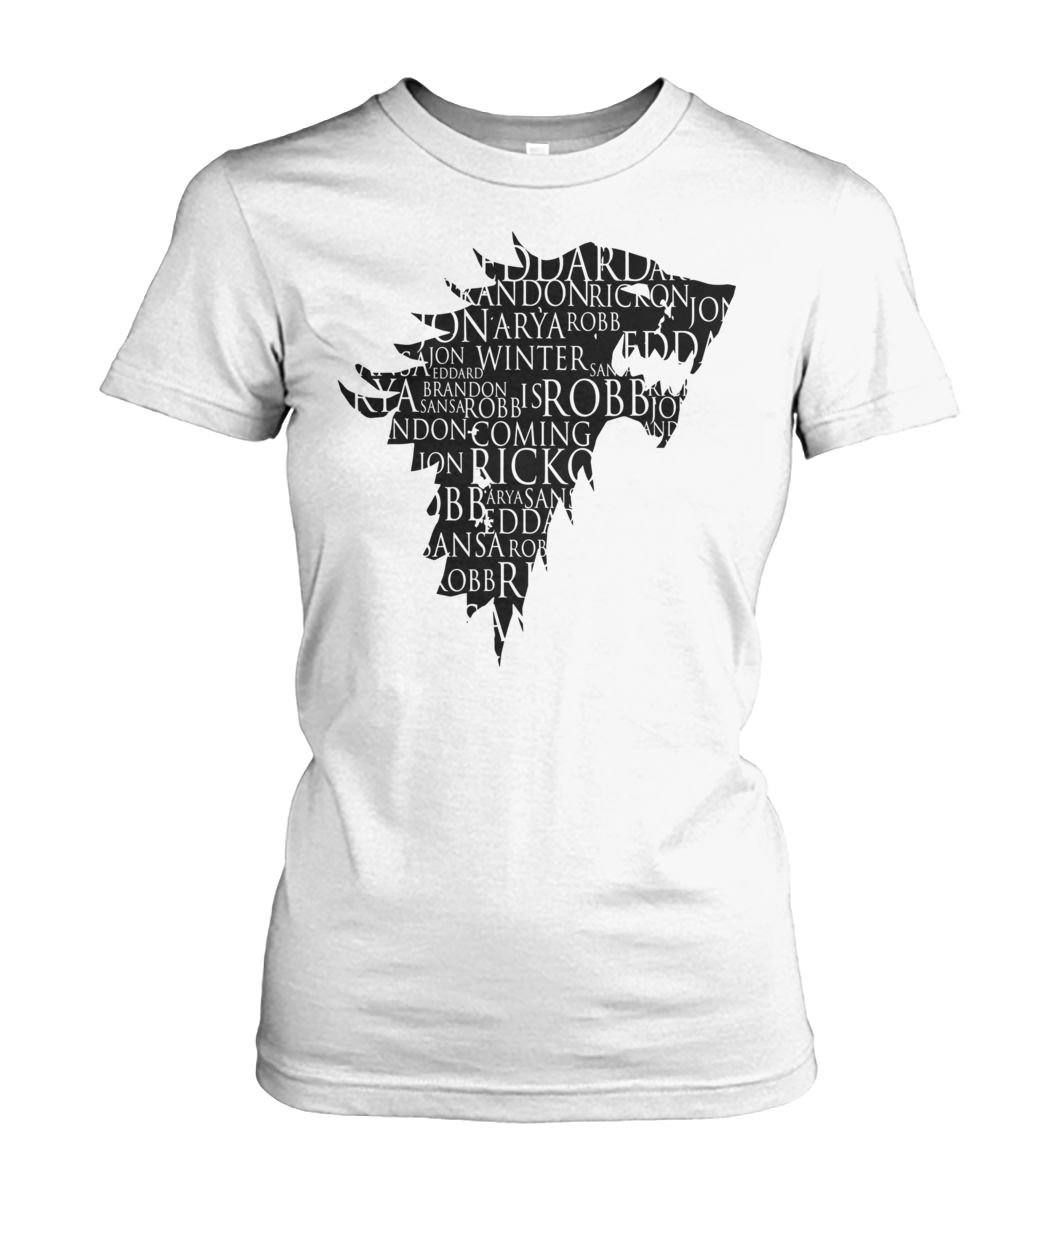 [Hot version] Direwolf best character names game of thrones shirt